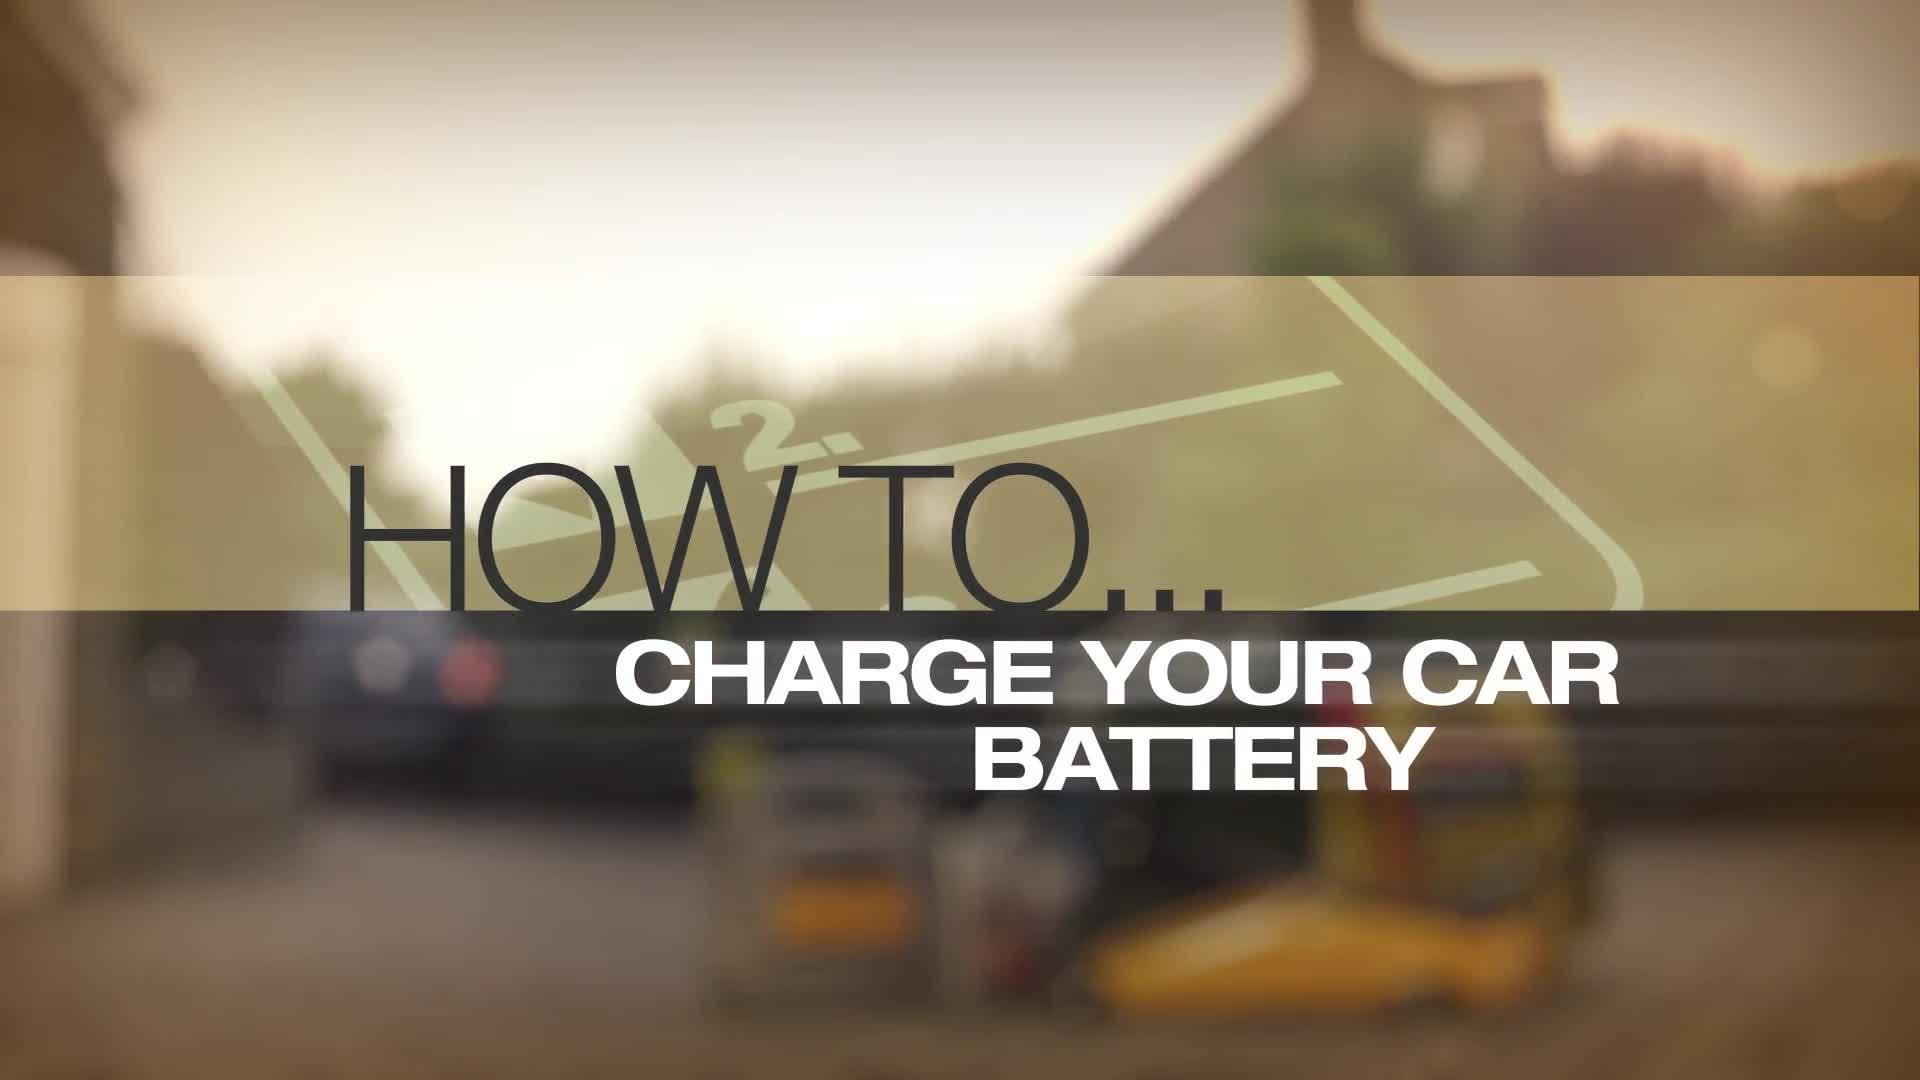 How to Charge a Car Battery Guide | Halfords Advice Centre